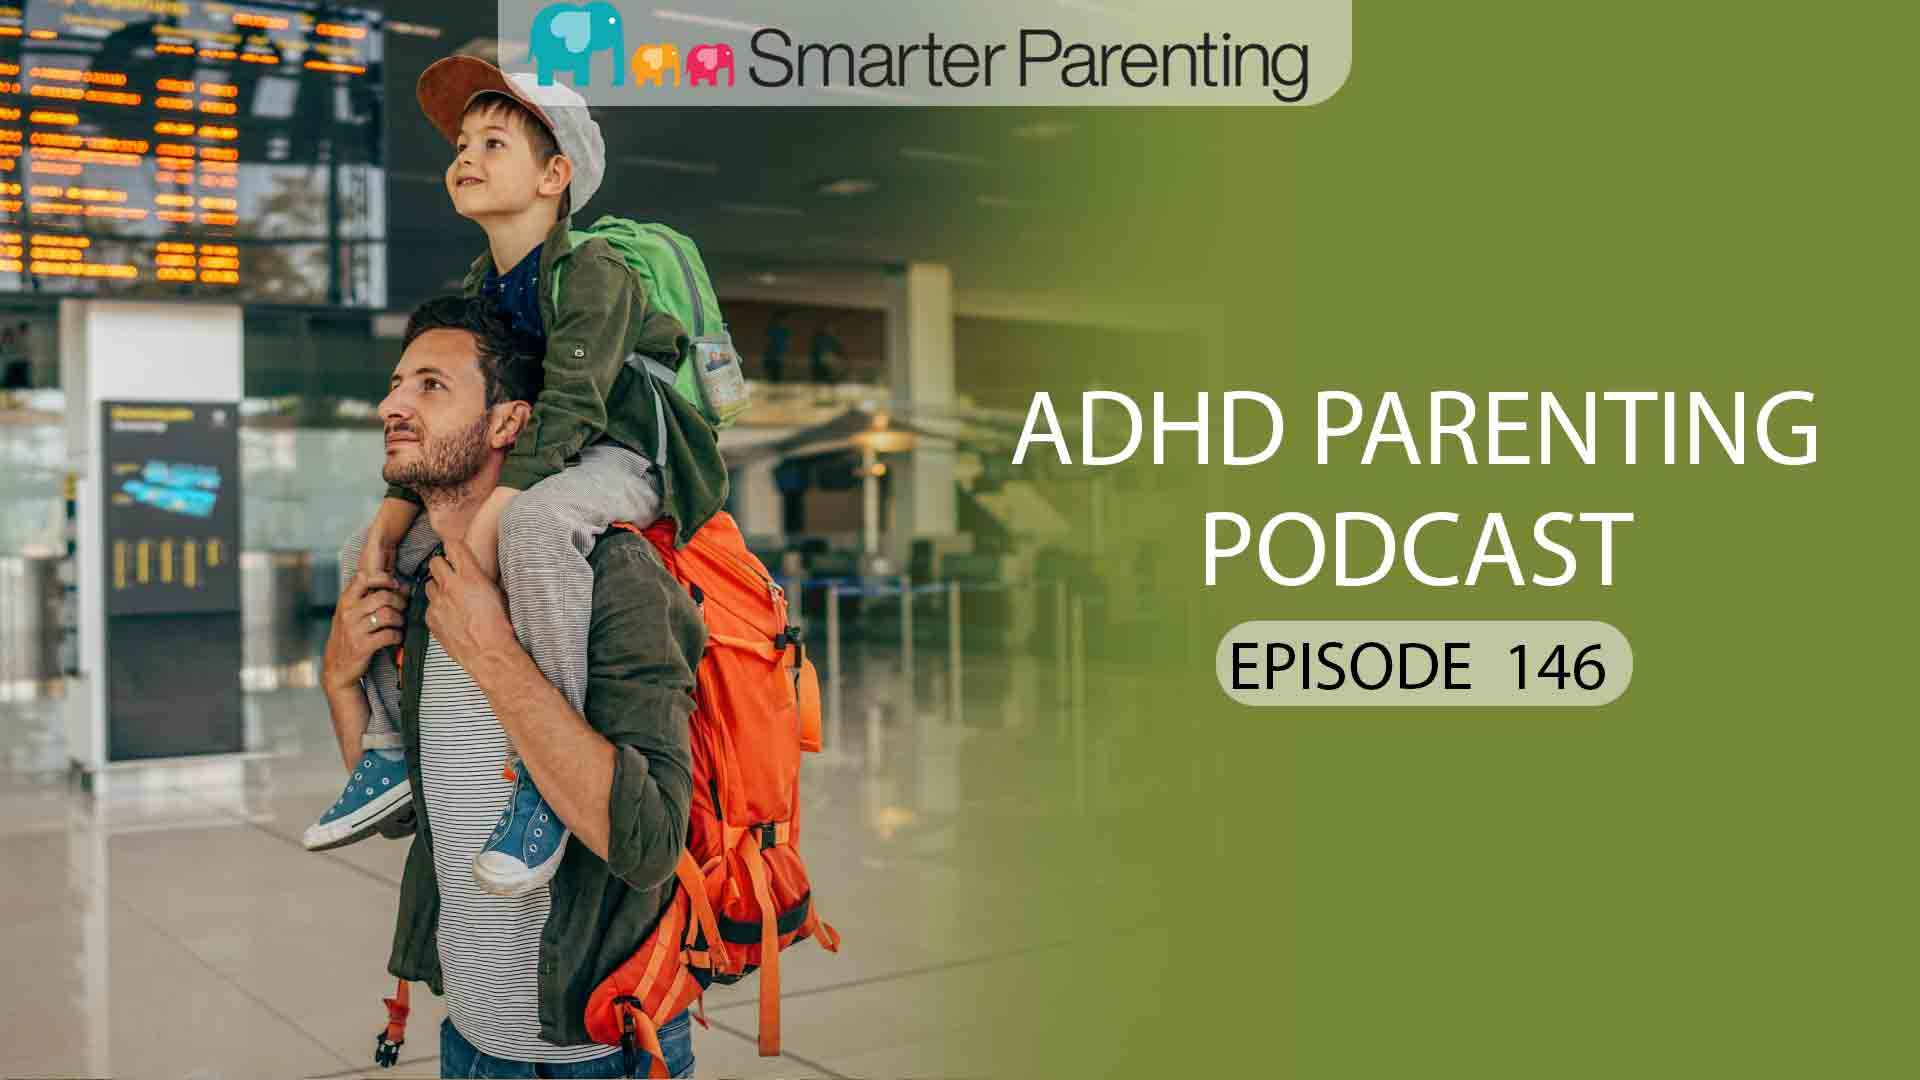 Moving past the ADHD label for your child - title graphic